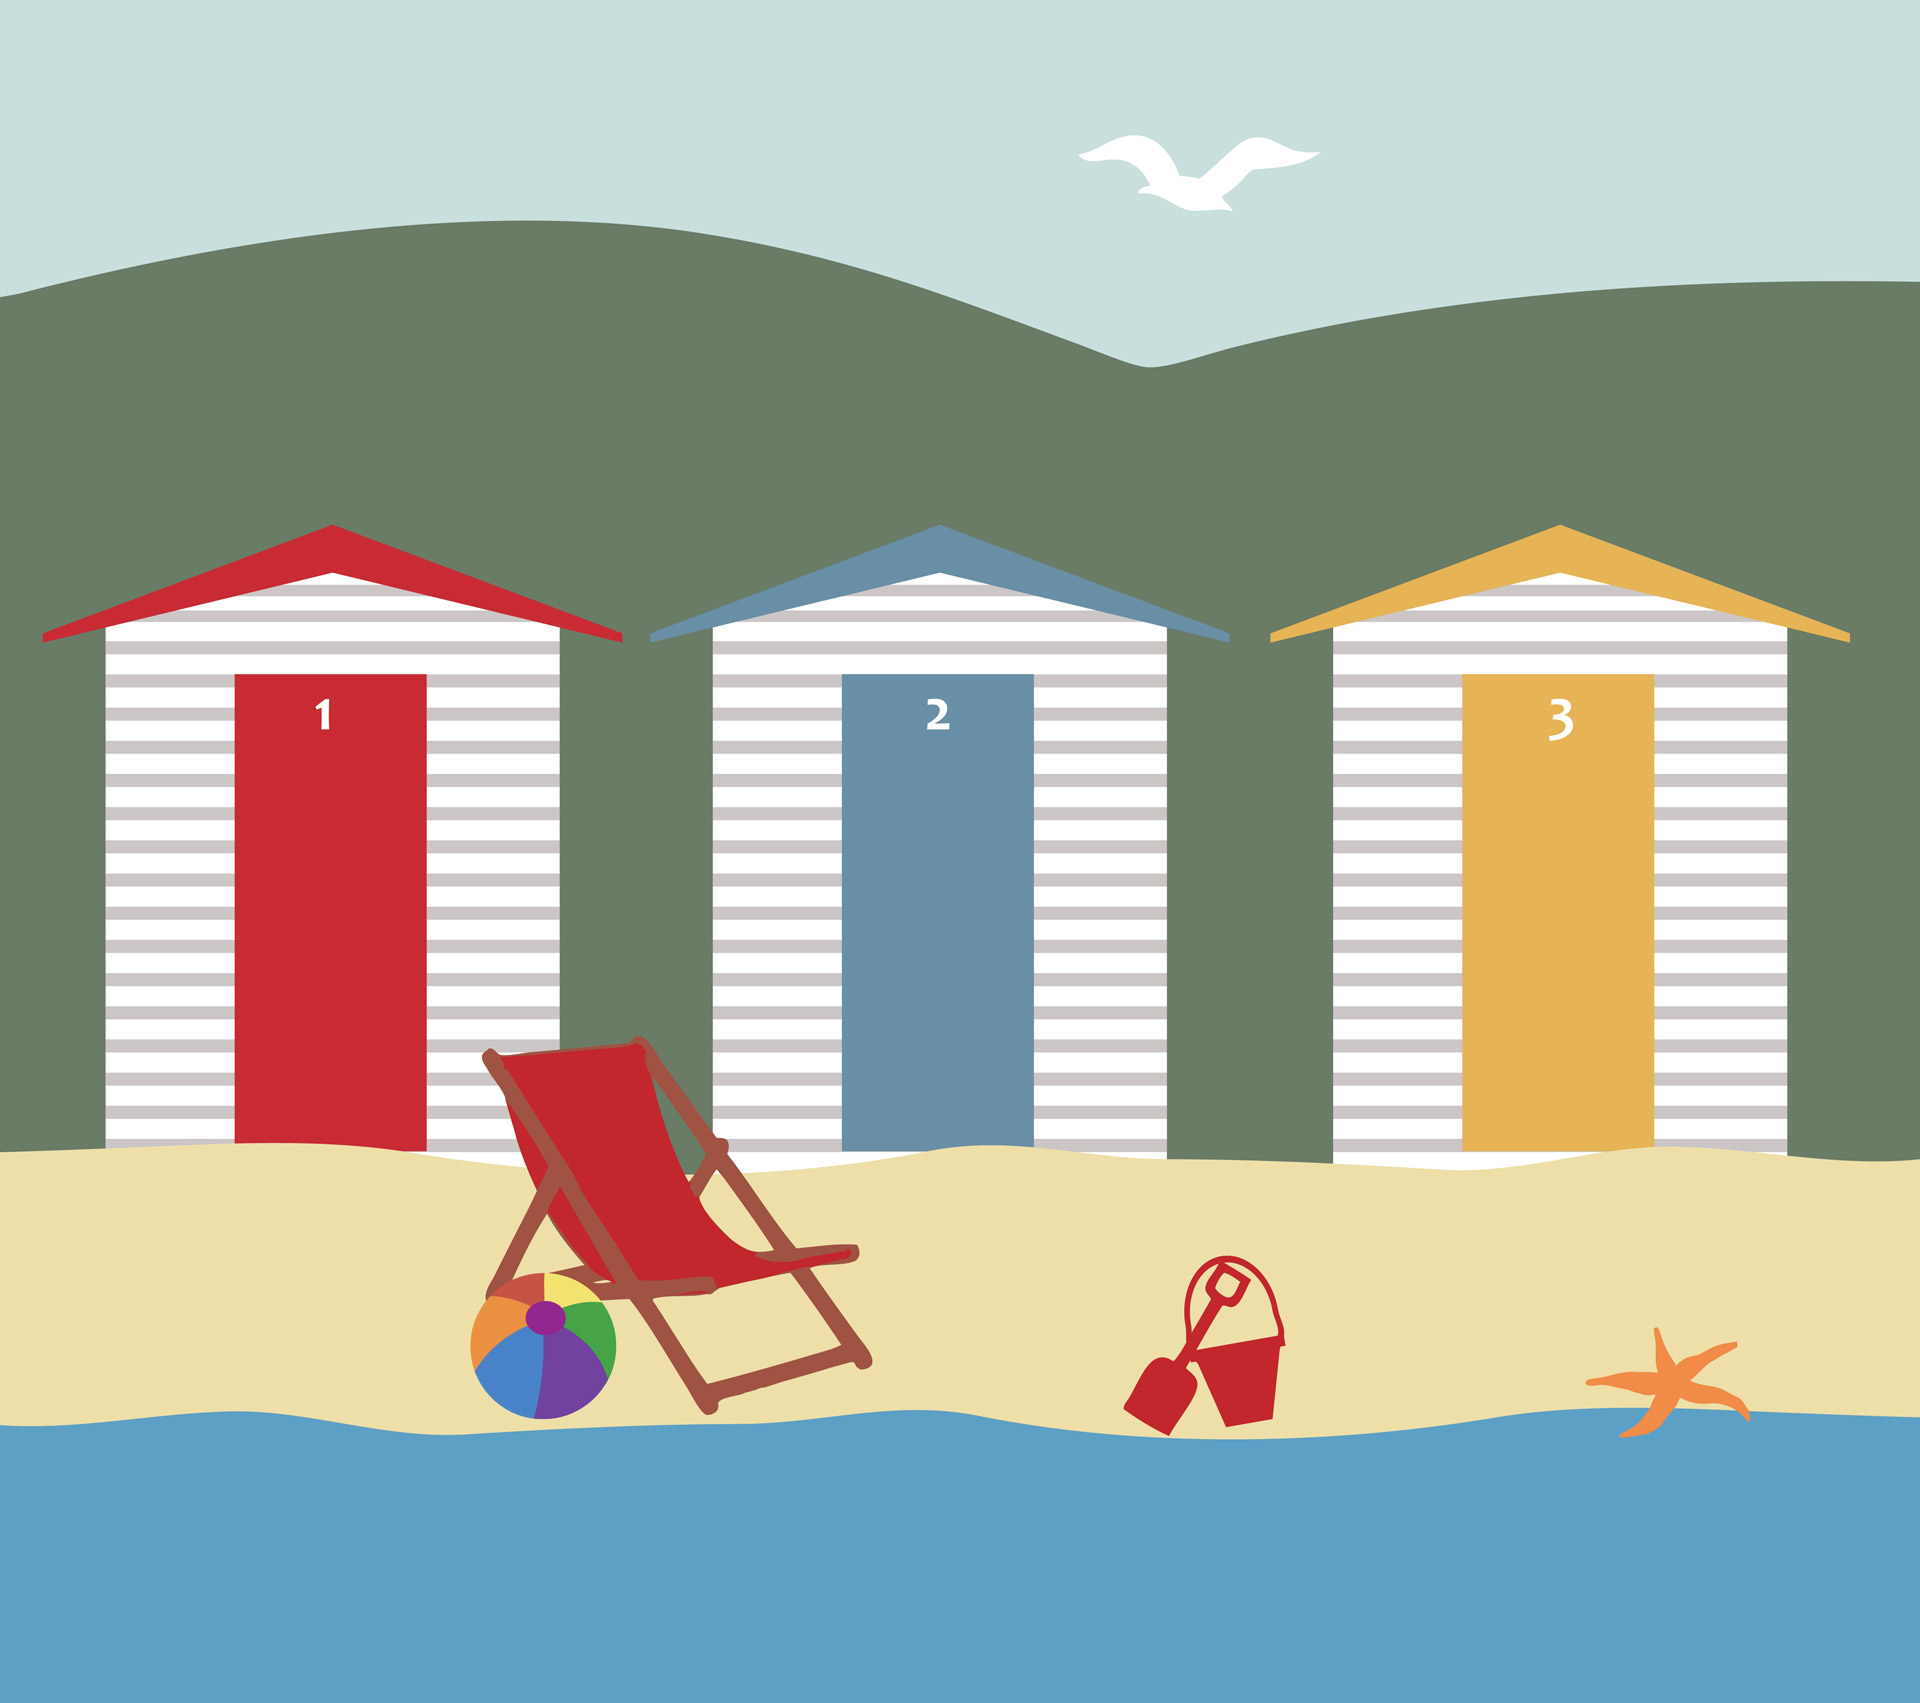 Seaside clipart #9, Download drawings